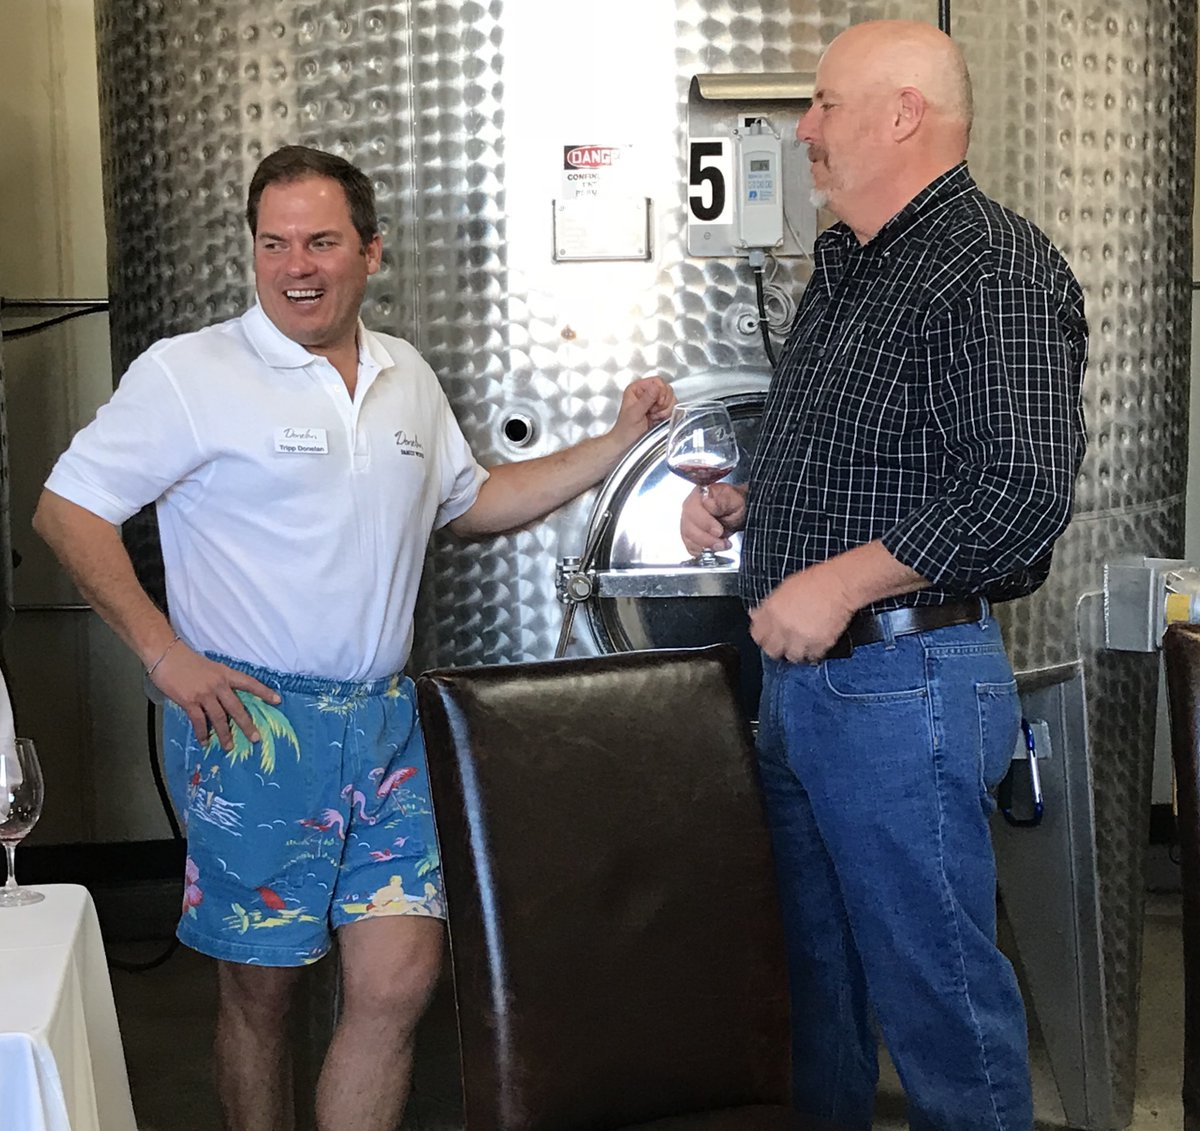 Shorts season is year-round when it comes to Tripp Donelan.  #donelanwines #shorts #throwback #westcoast #wine #redwine #whitewine #tradition #cheers #family #friends #winetasting #sonoma #sonomacounty #santarosa